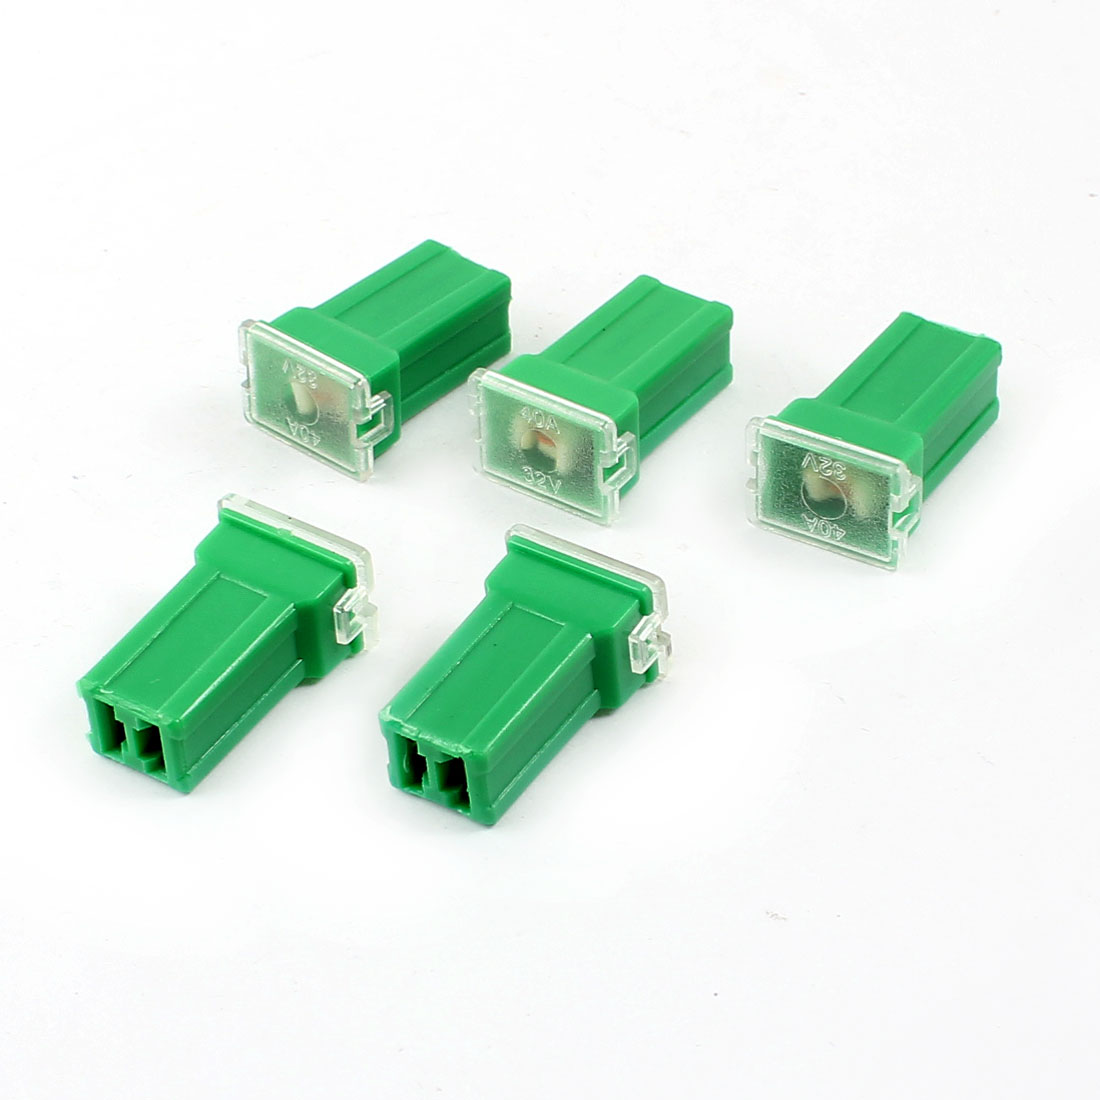 Unique Bargains Green 40A 32V Plastic Case Female Plug in  Cartridge PAL Fuse 5 Pcs